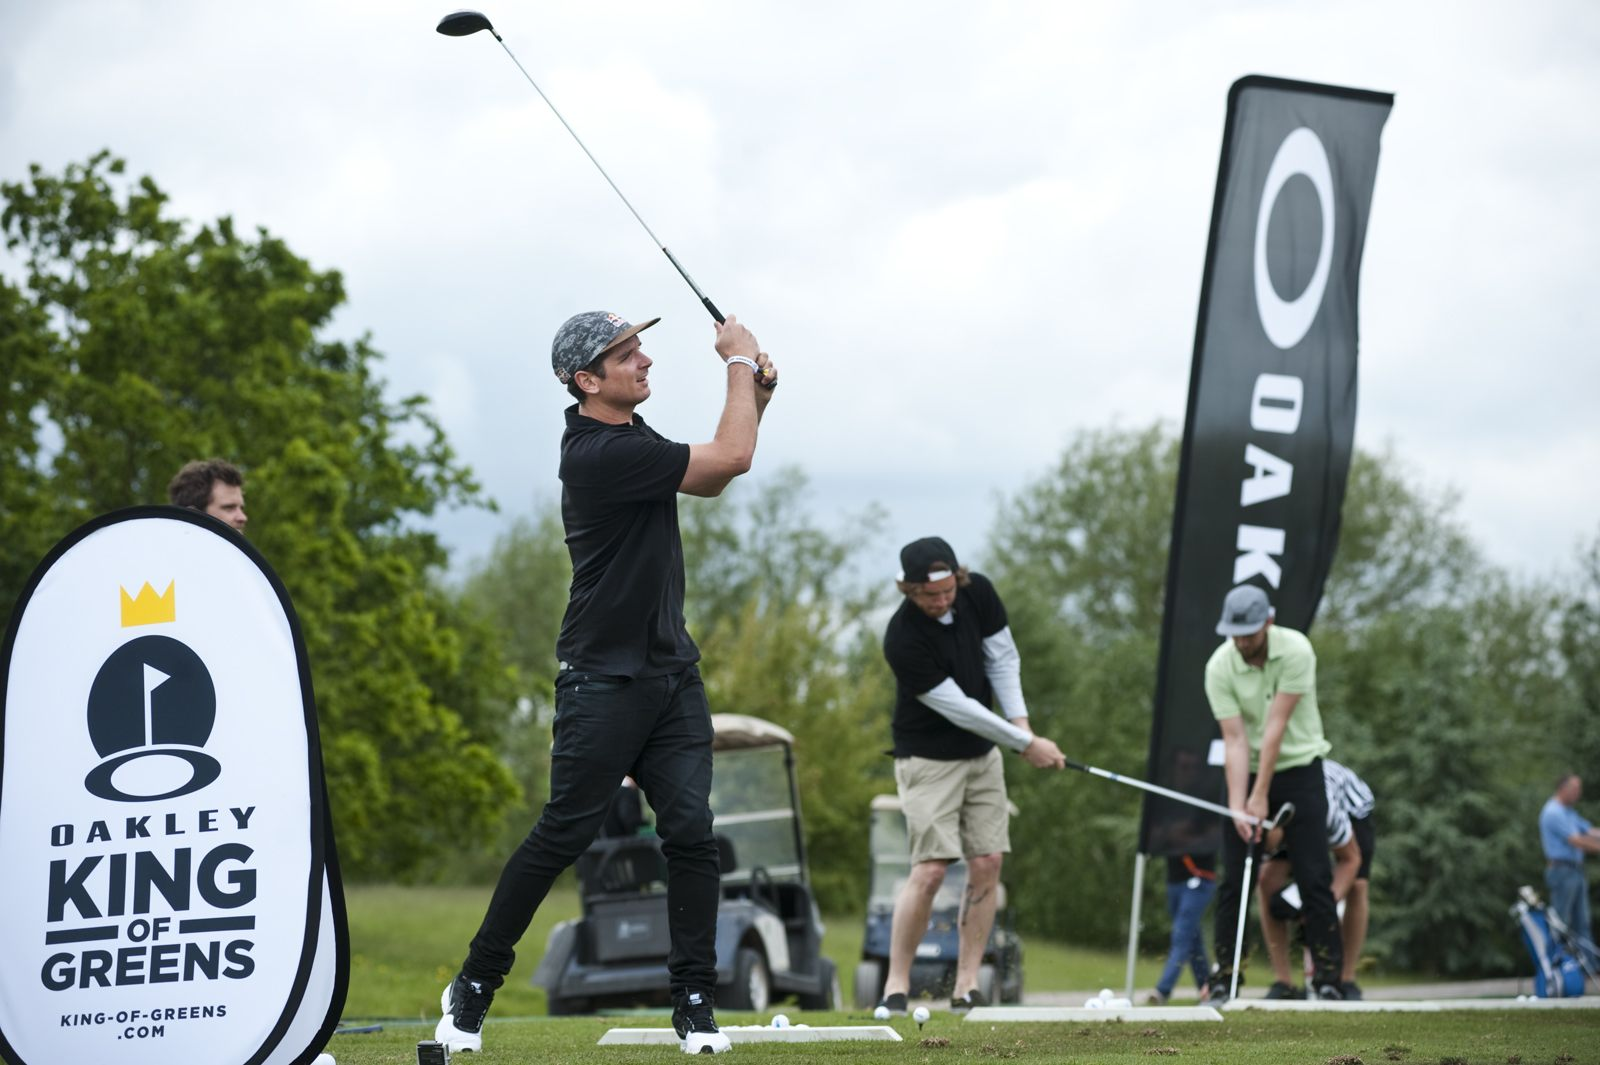 Oakley_King_of Greens_2014_MarkoGrilc_GolfClinic